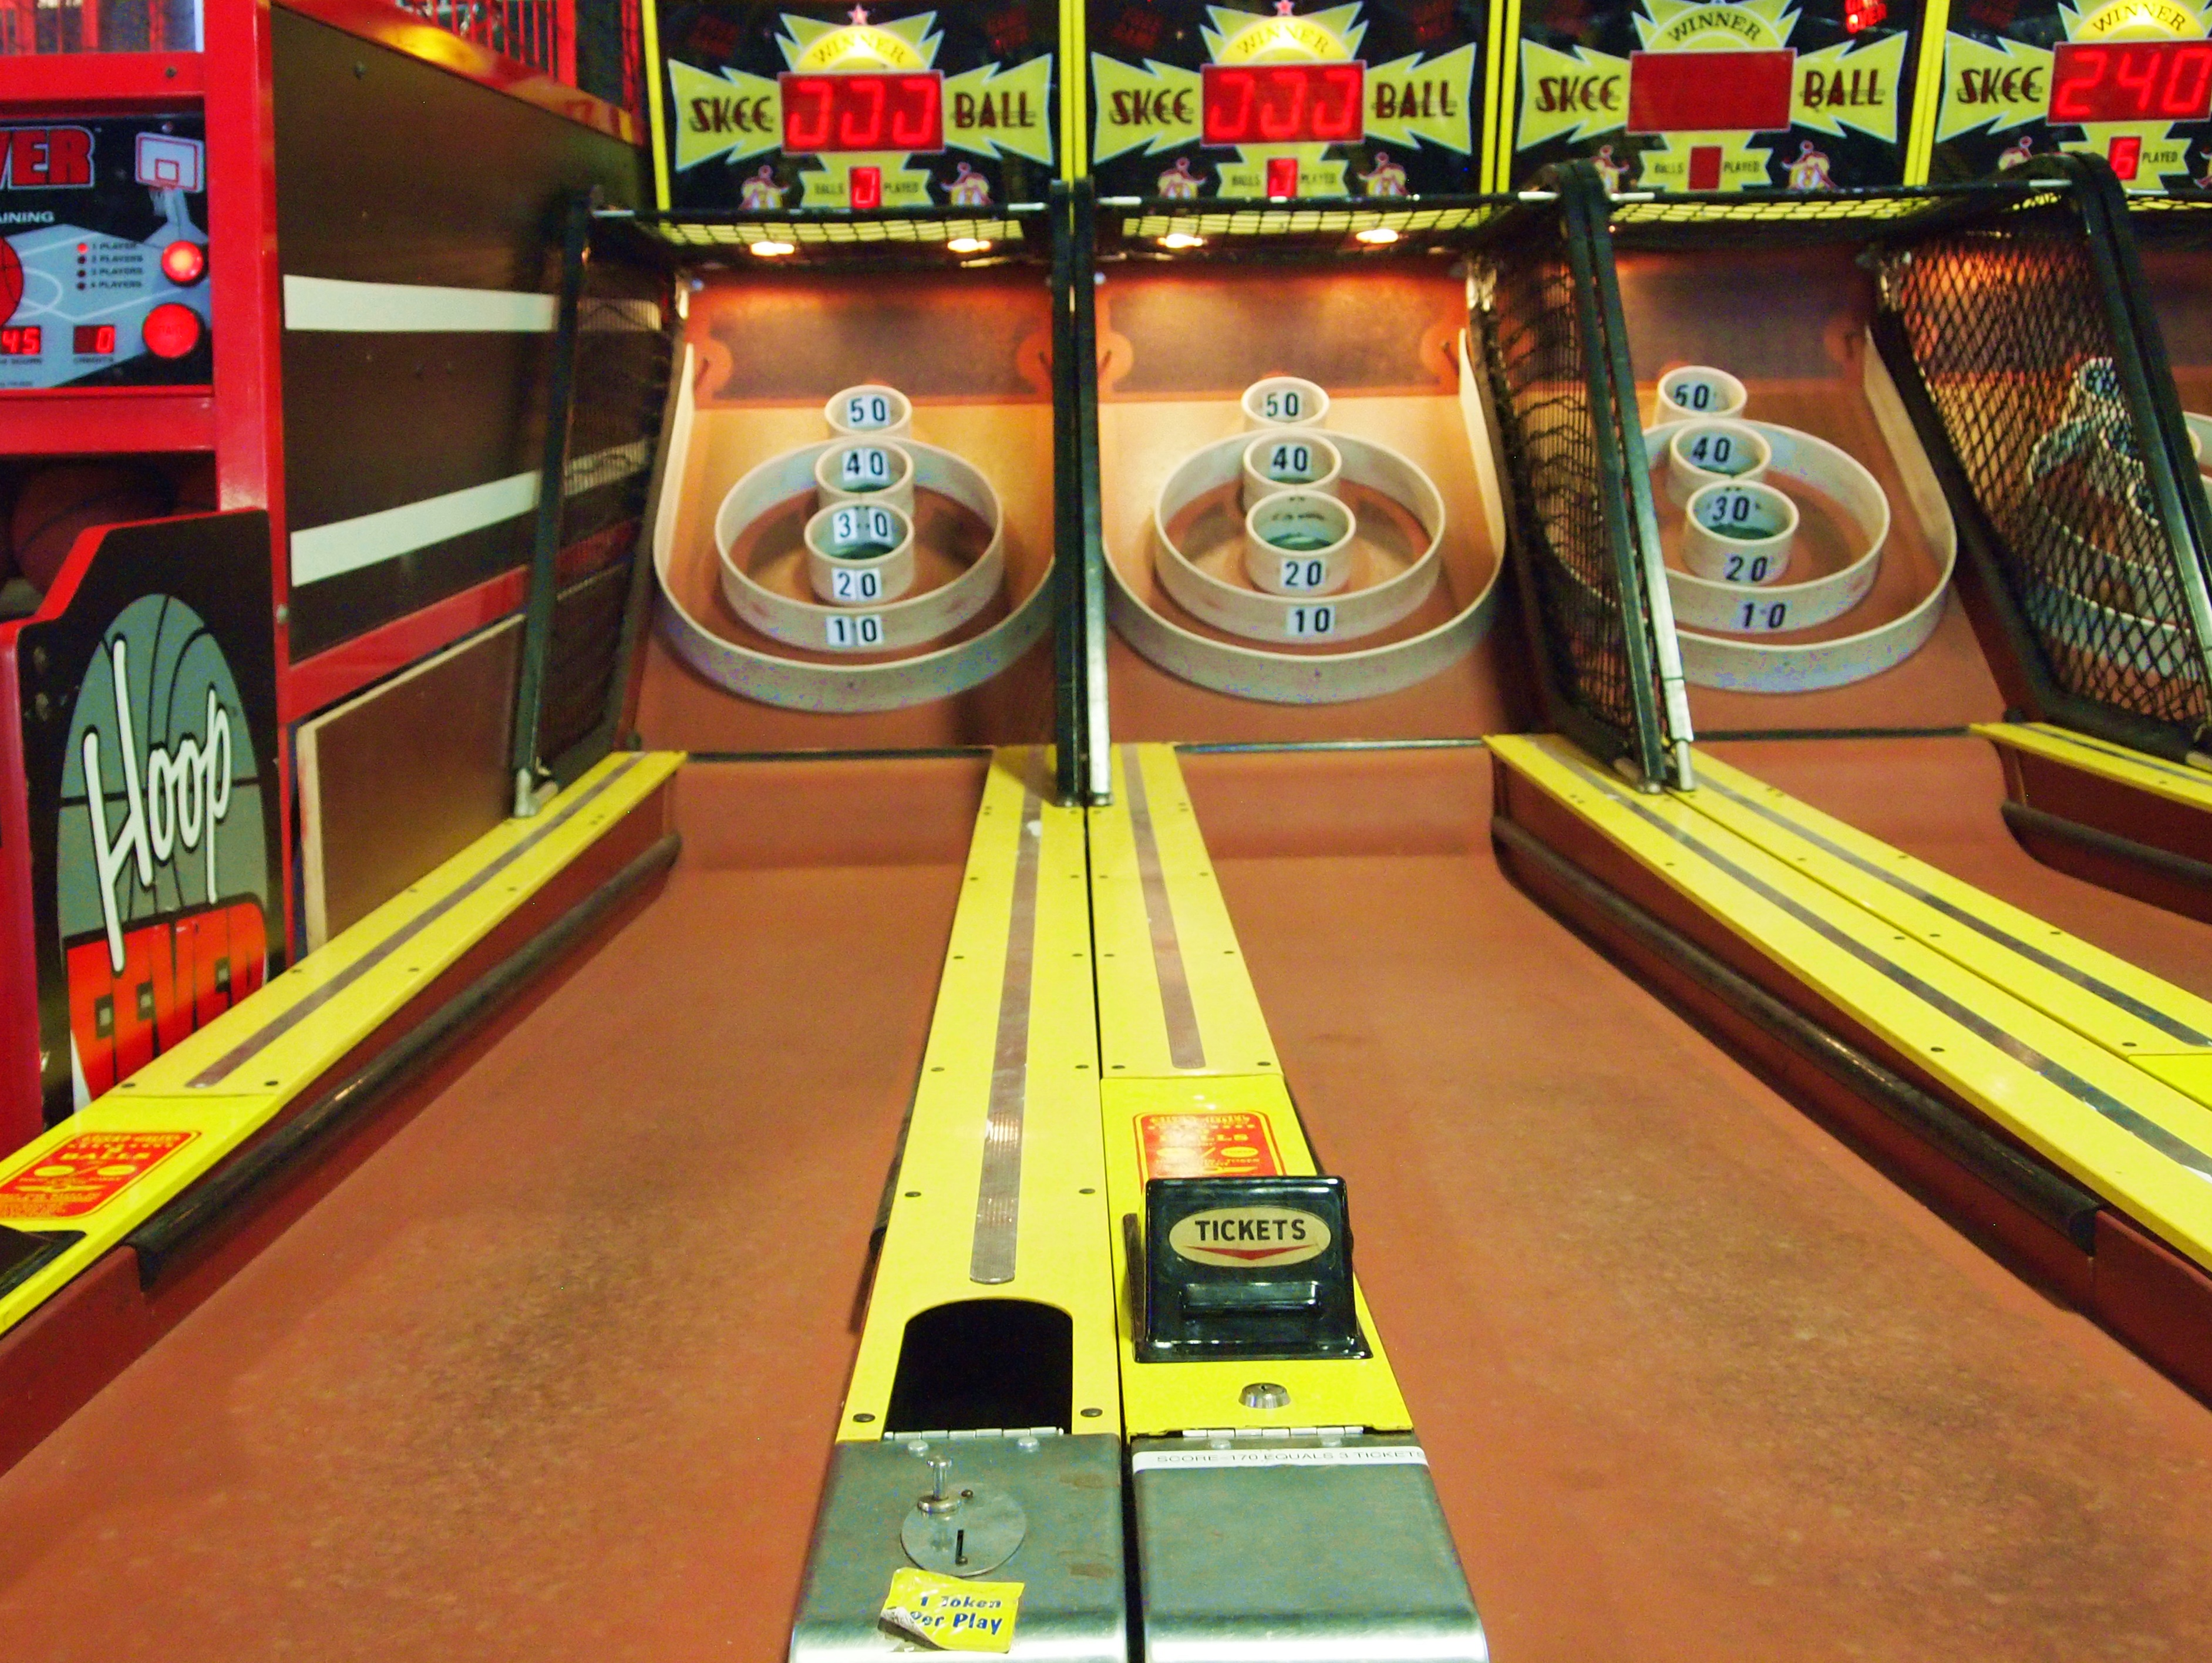 Salem Willows Park and Arcade | Food, Fun, and Fresh Air in Salem, Massachusetts - New England Today